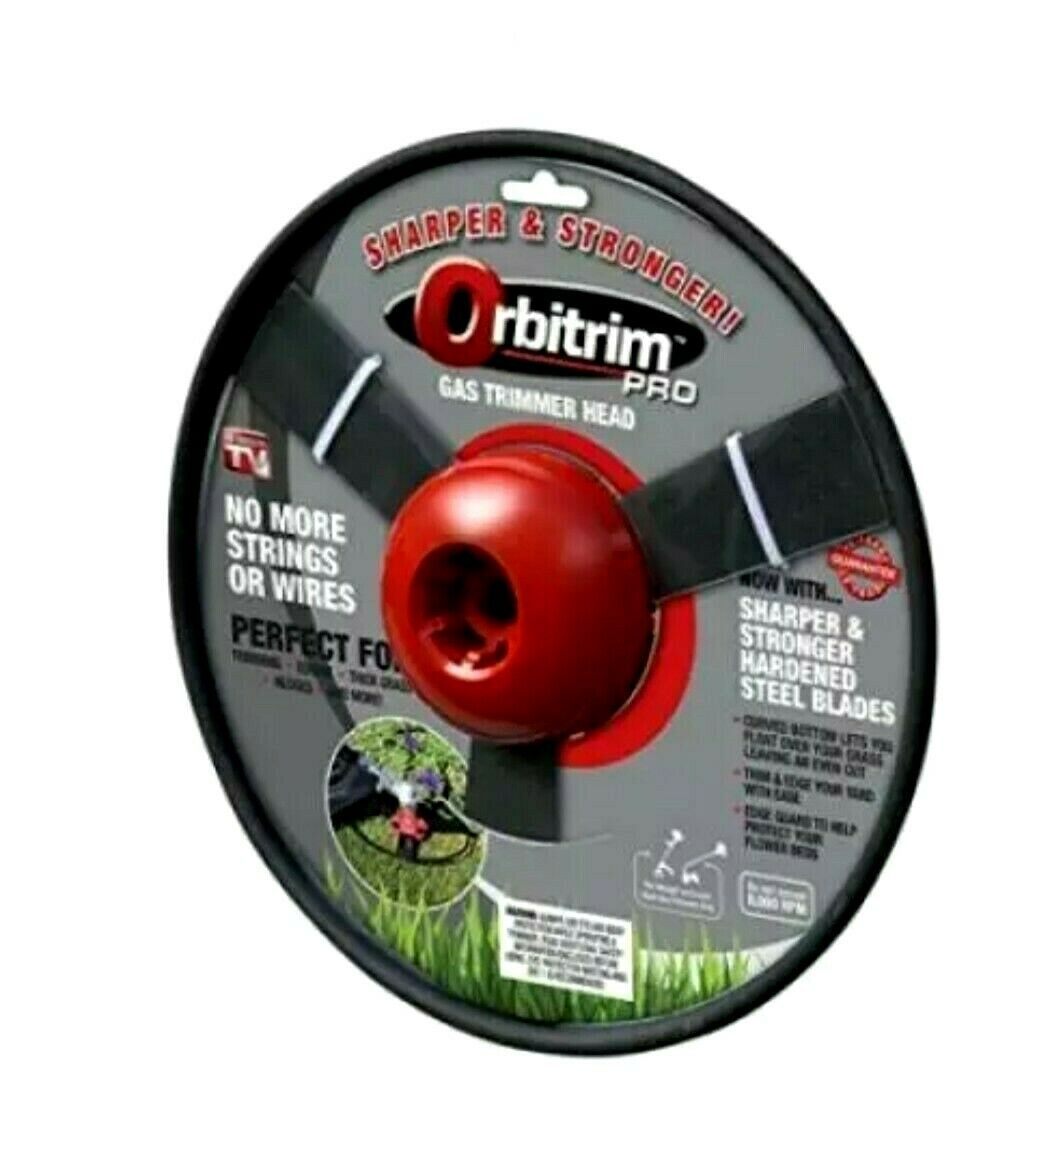 Orbitrim Pro No More Strings or Wires Gas Trimmer Head - Sha